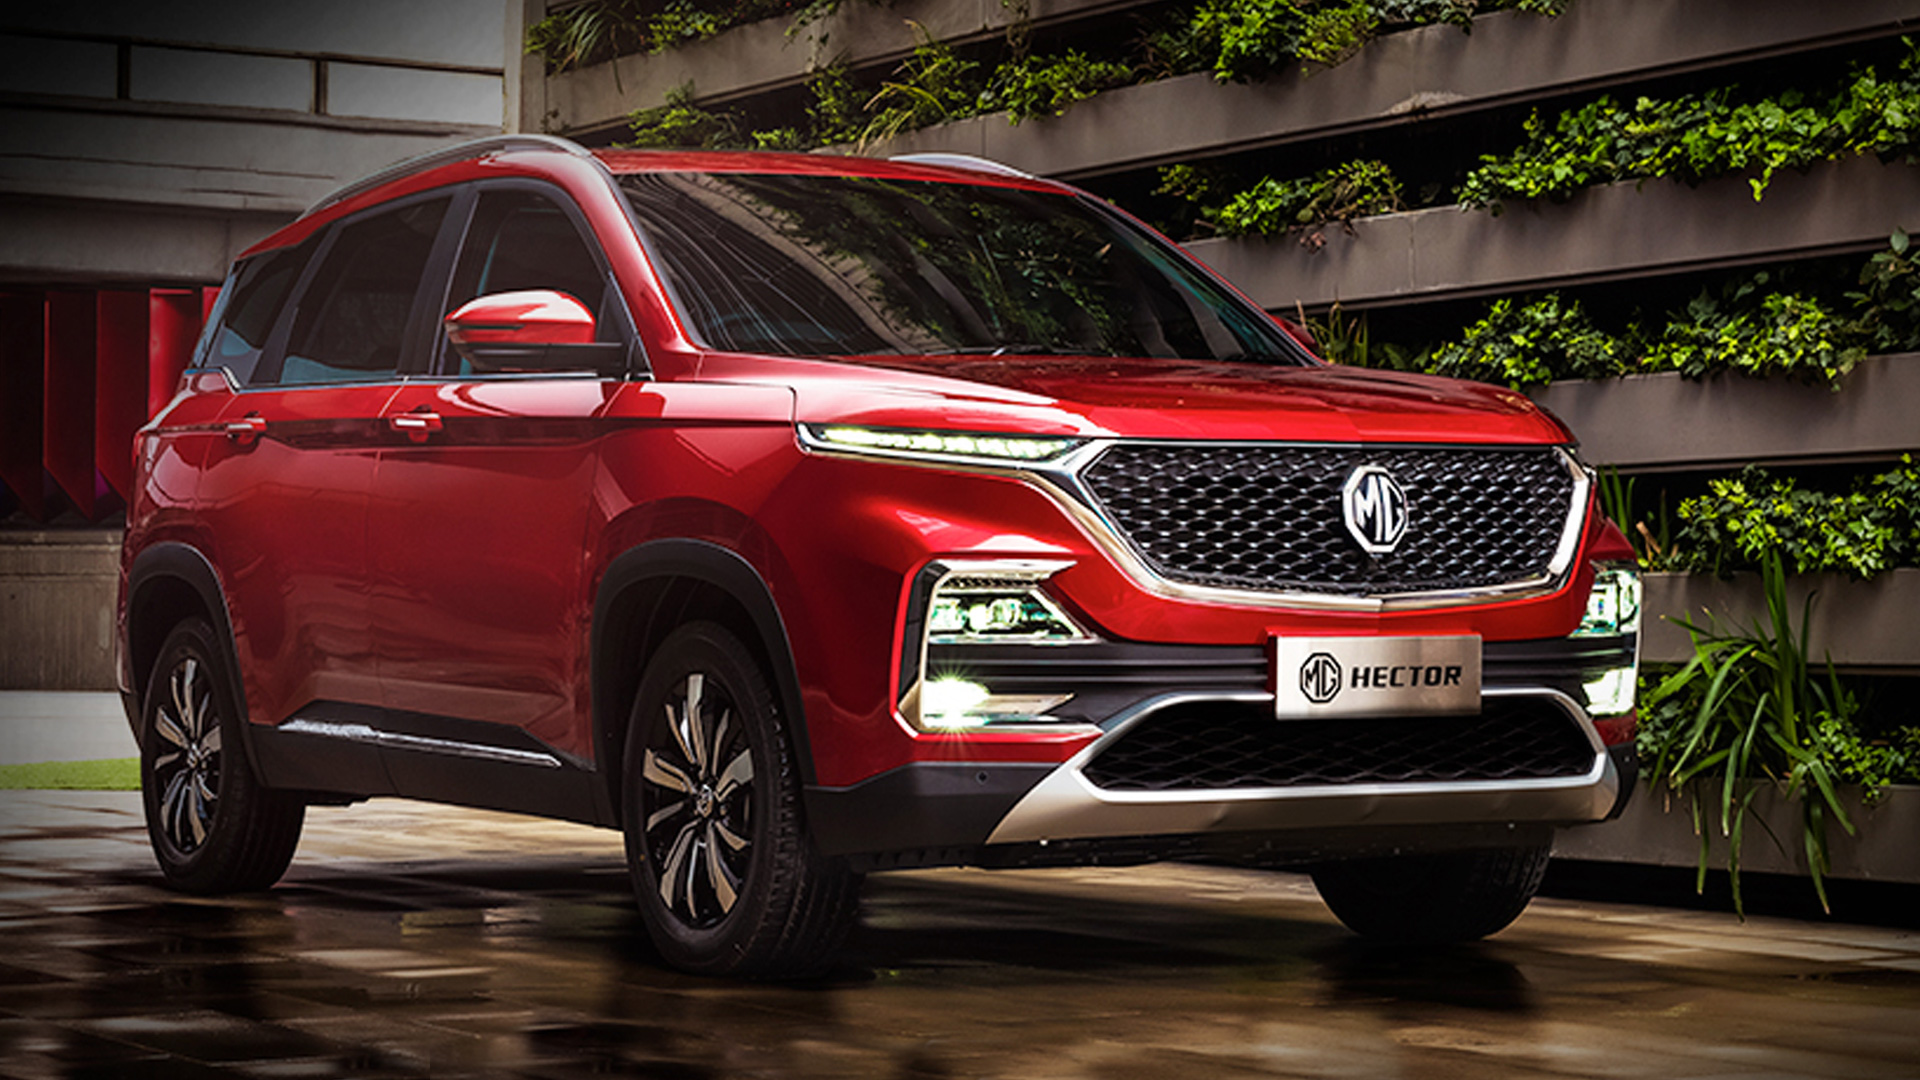 MG Hector 2019 1.5 Super Petrol